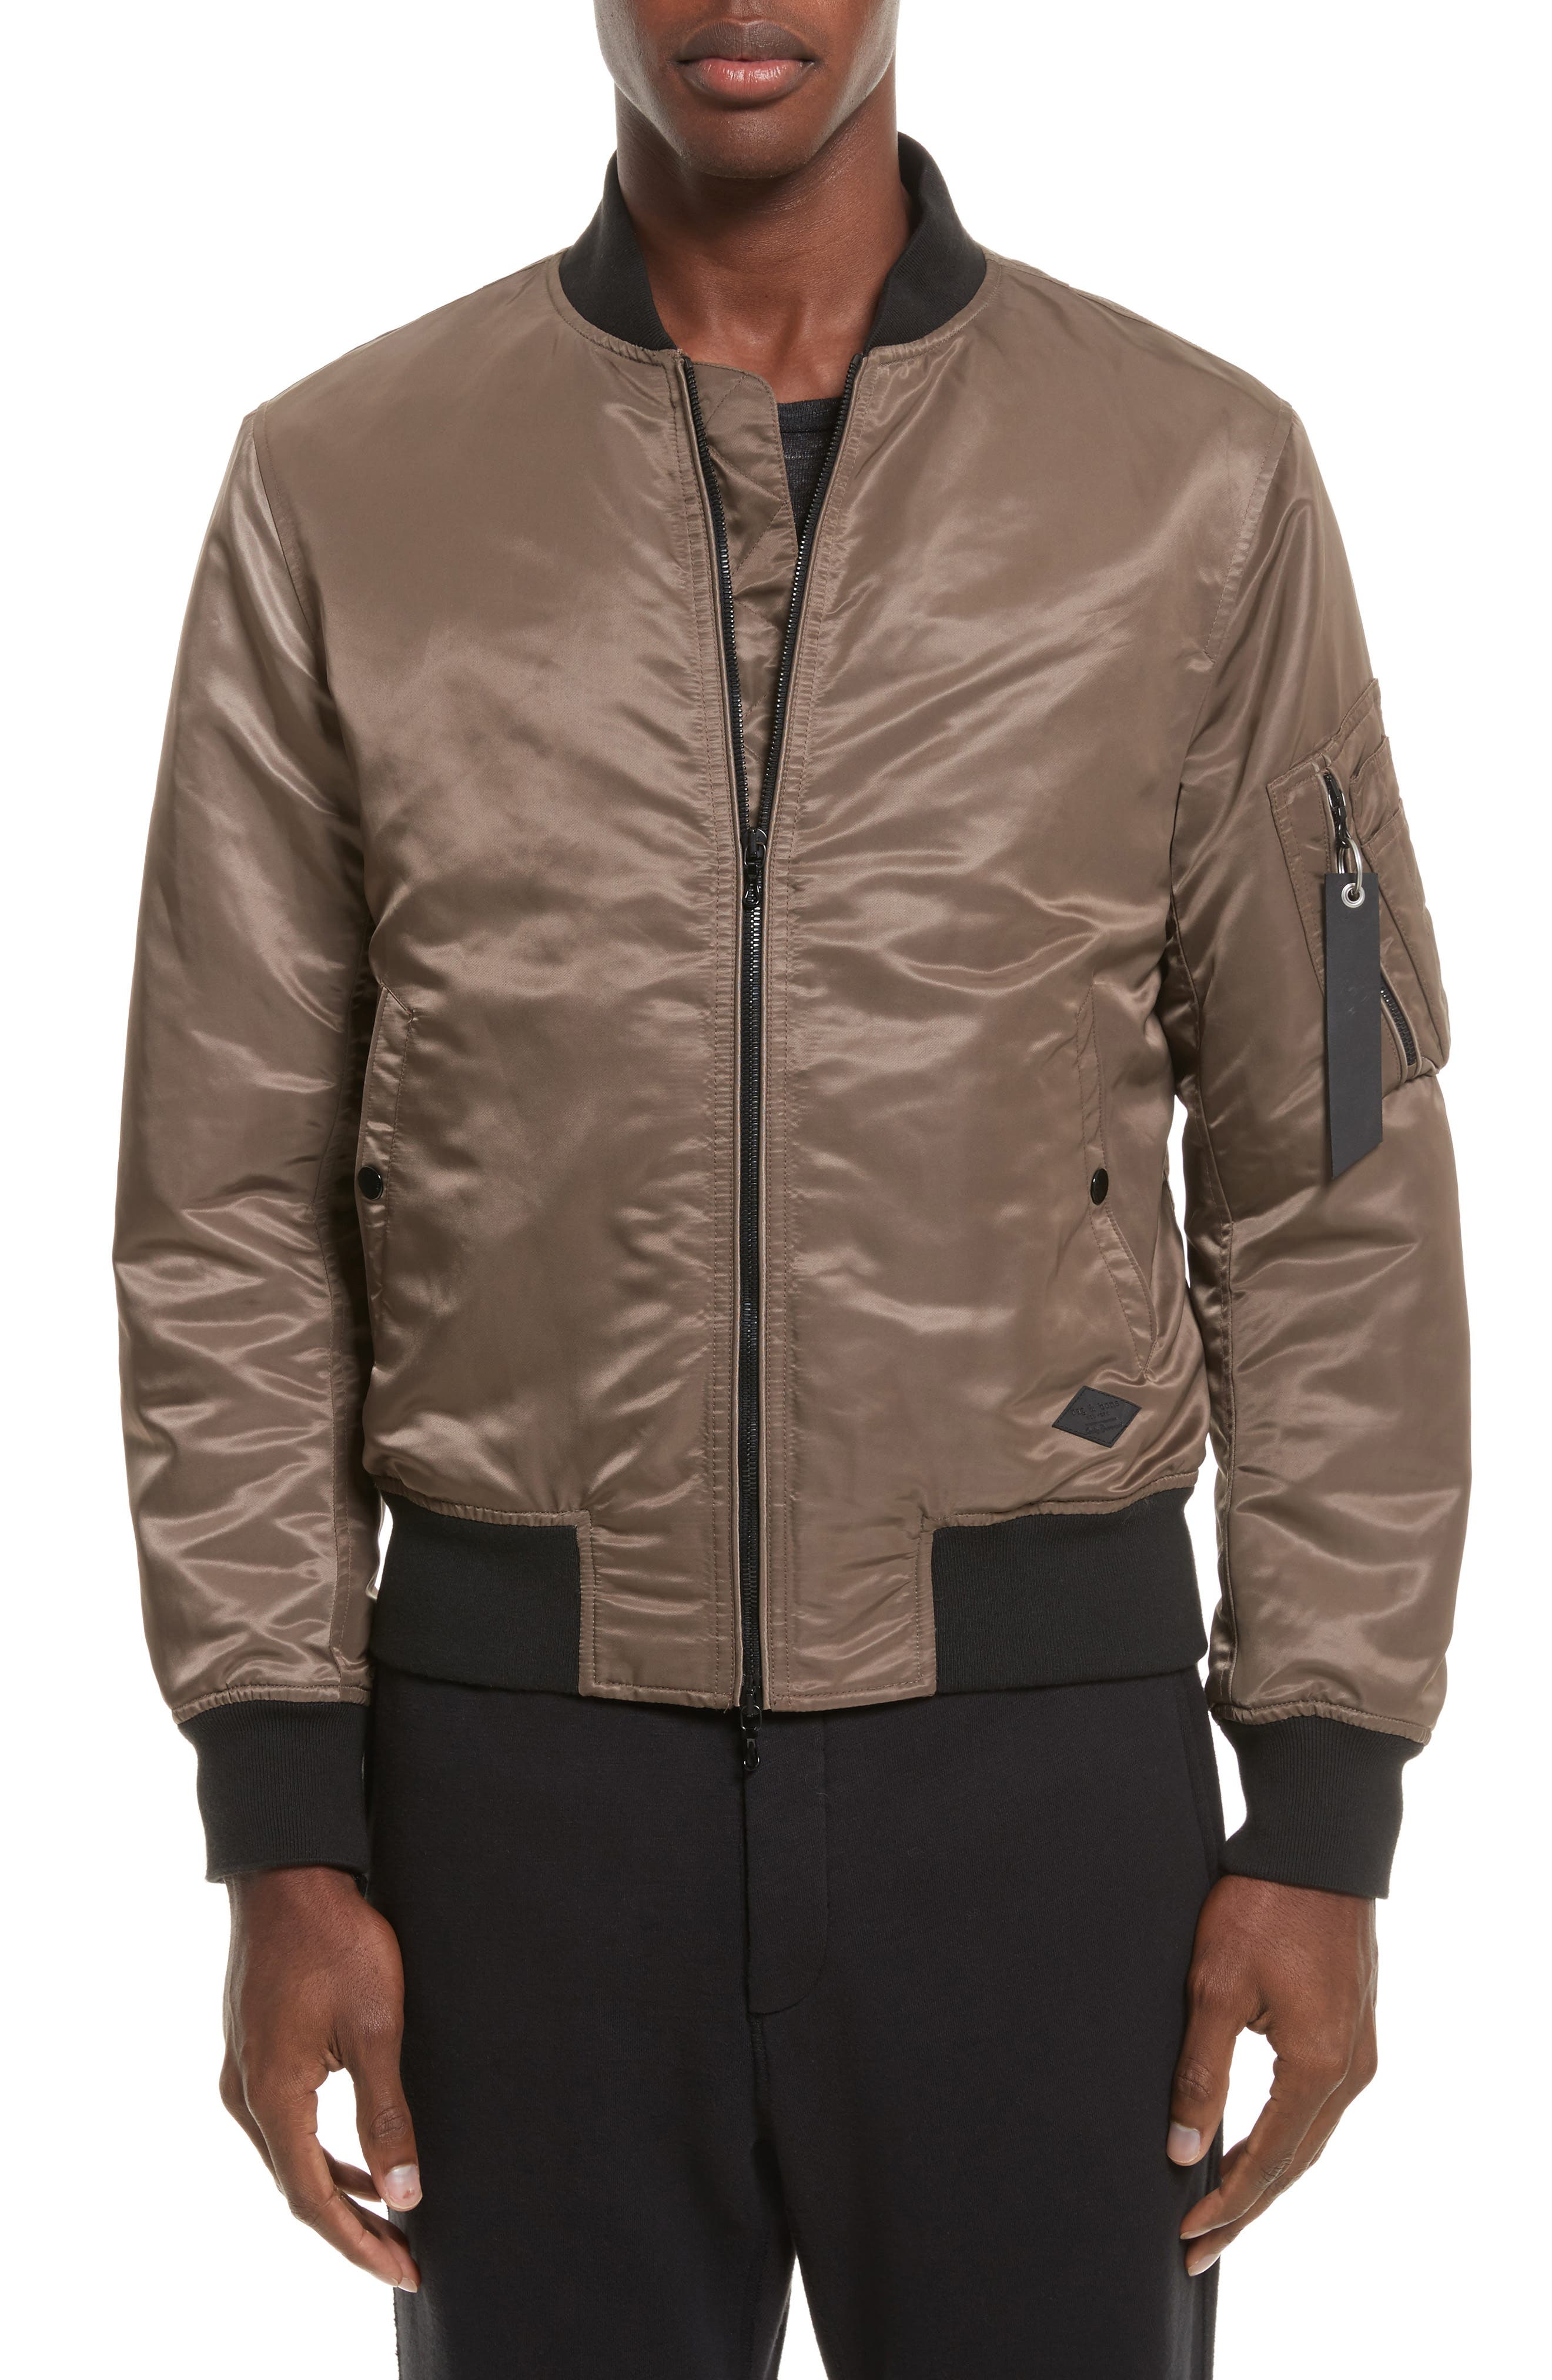 Alternate Image 1 Selected - rag & bone Manston Bomber Jacket